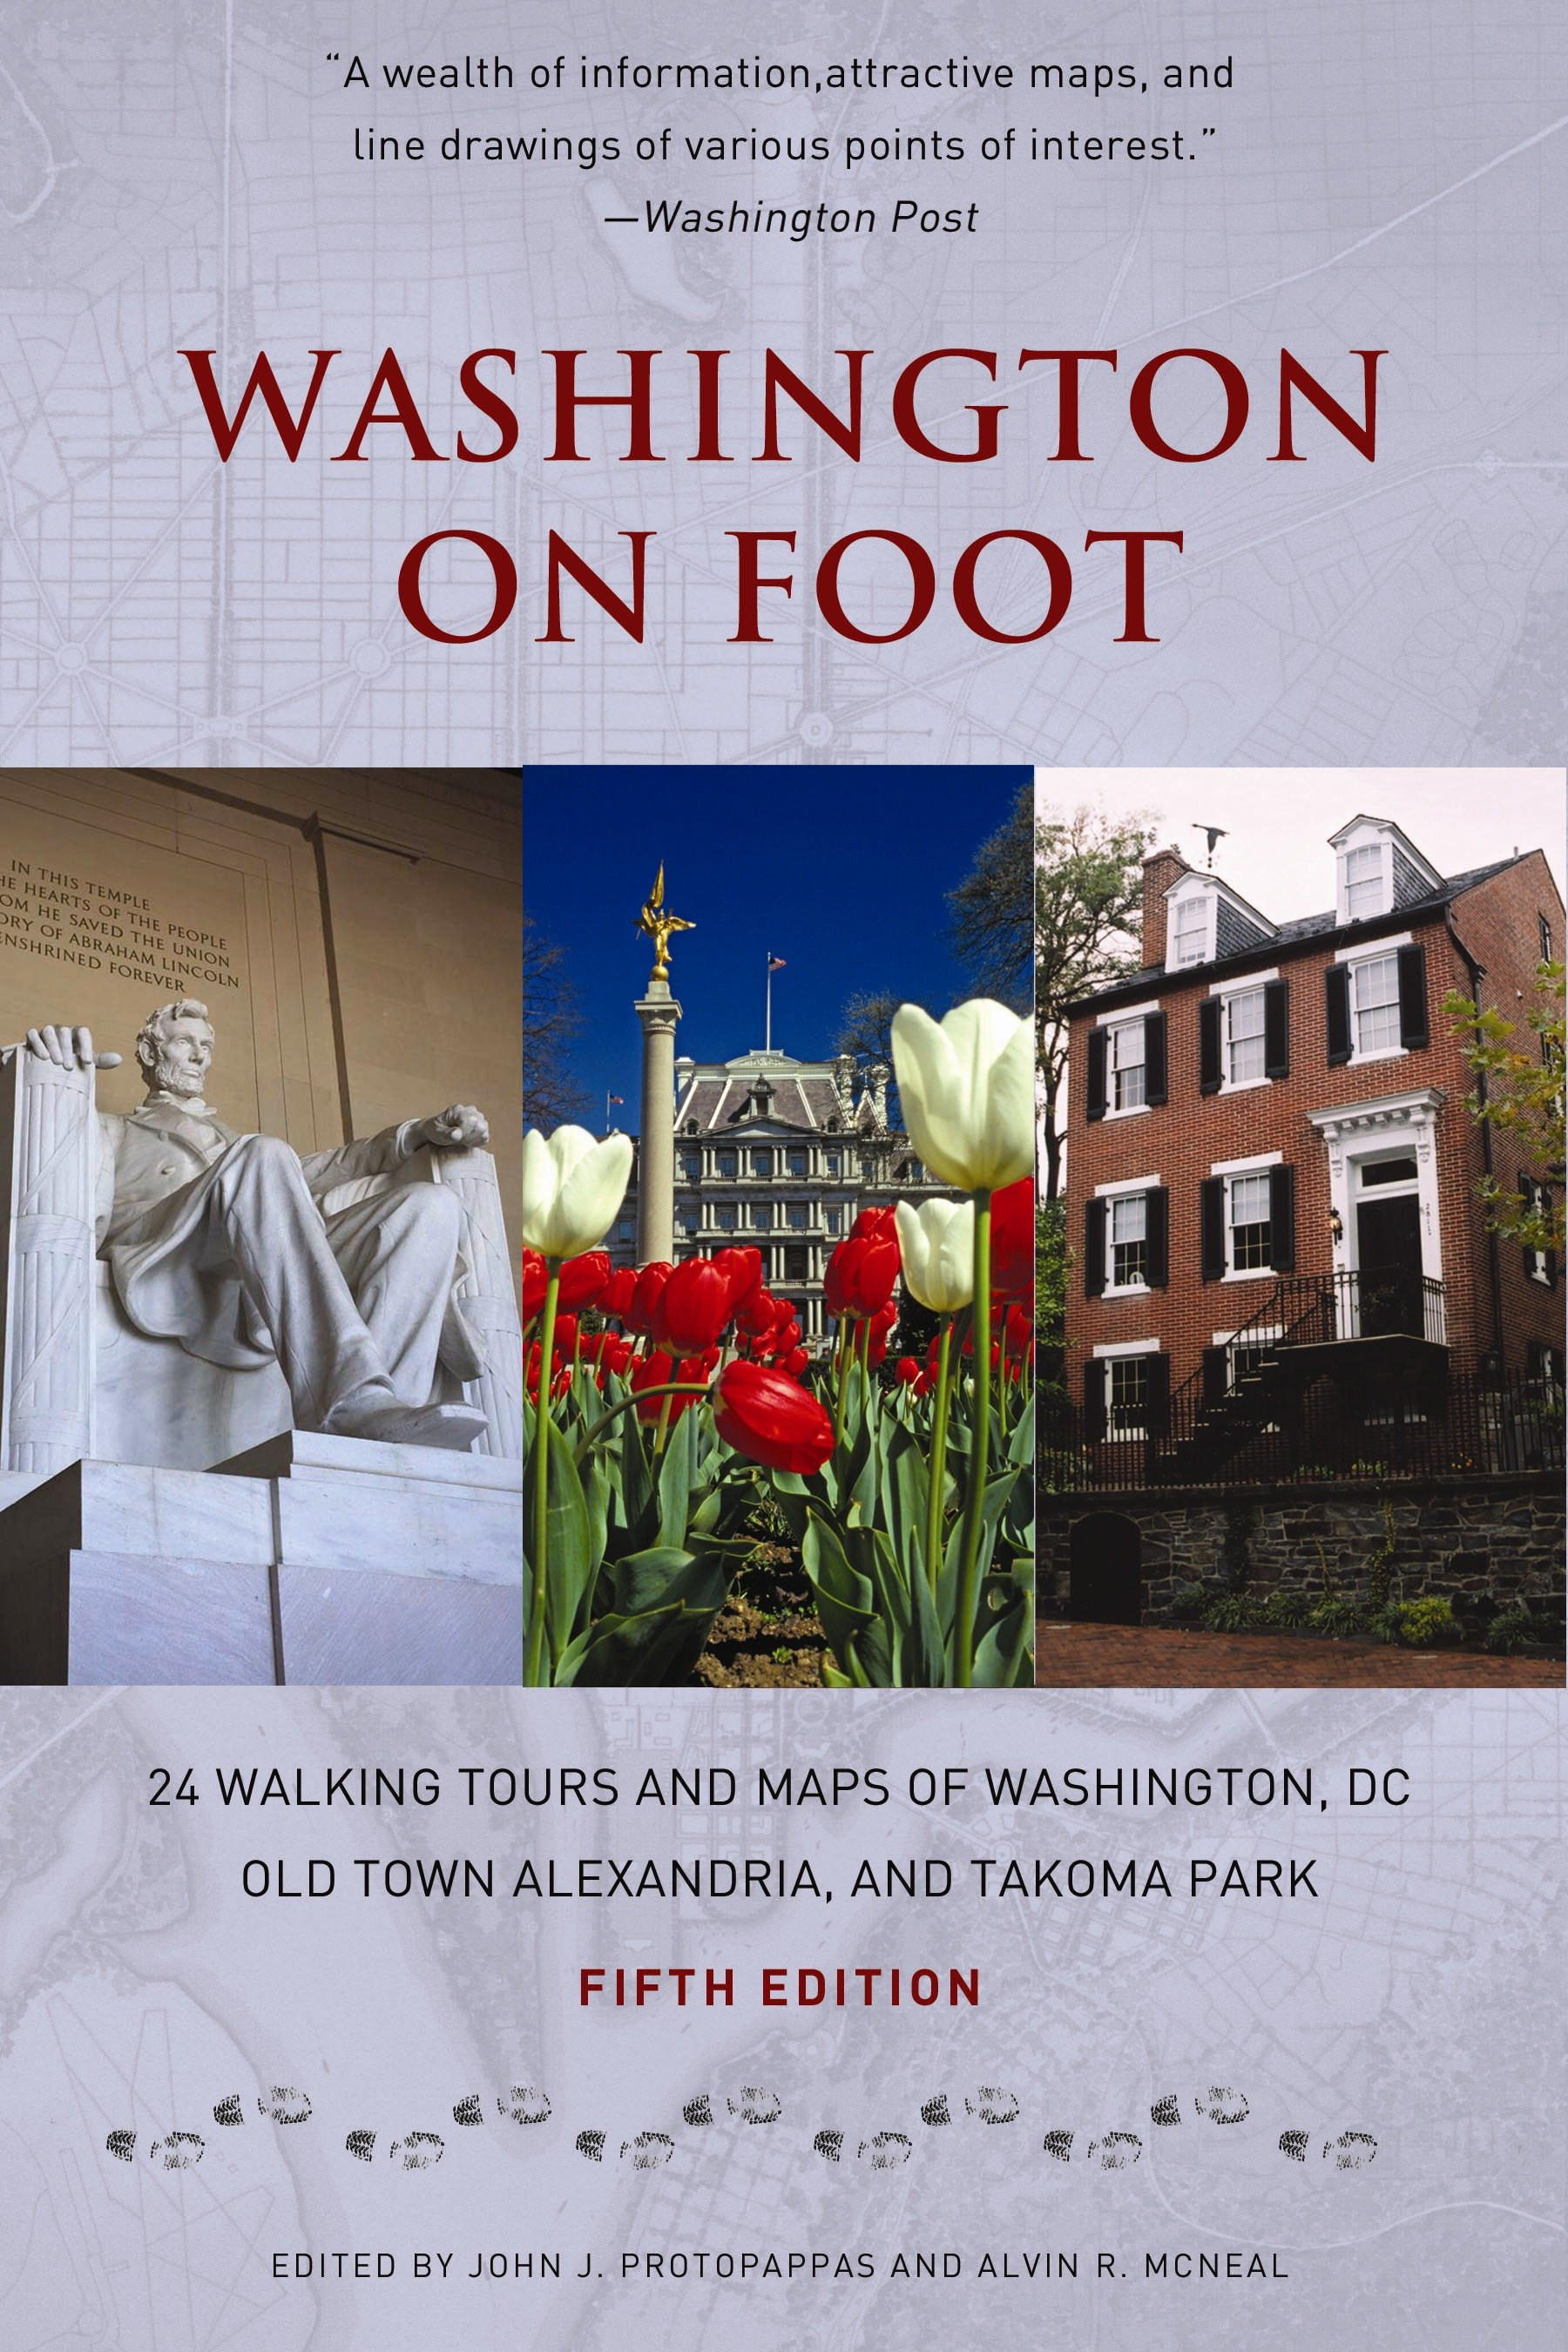 Washington on Foot, Fifth Edition 24 Walking Tours and Maps of Washington, DC, Old Town Alexandria, and Takoma Park